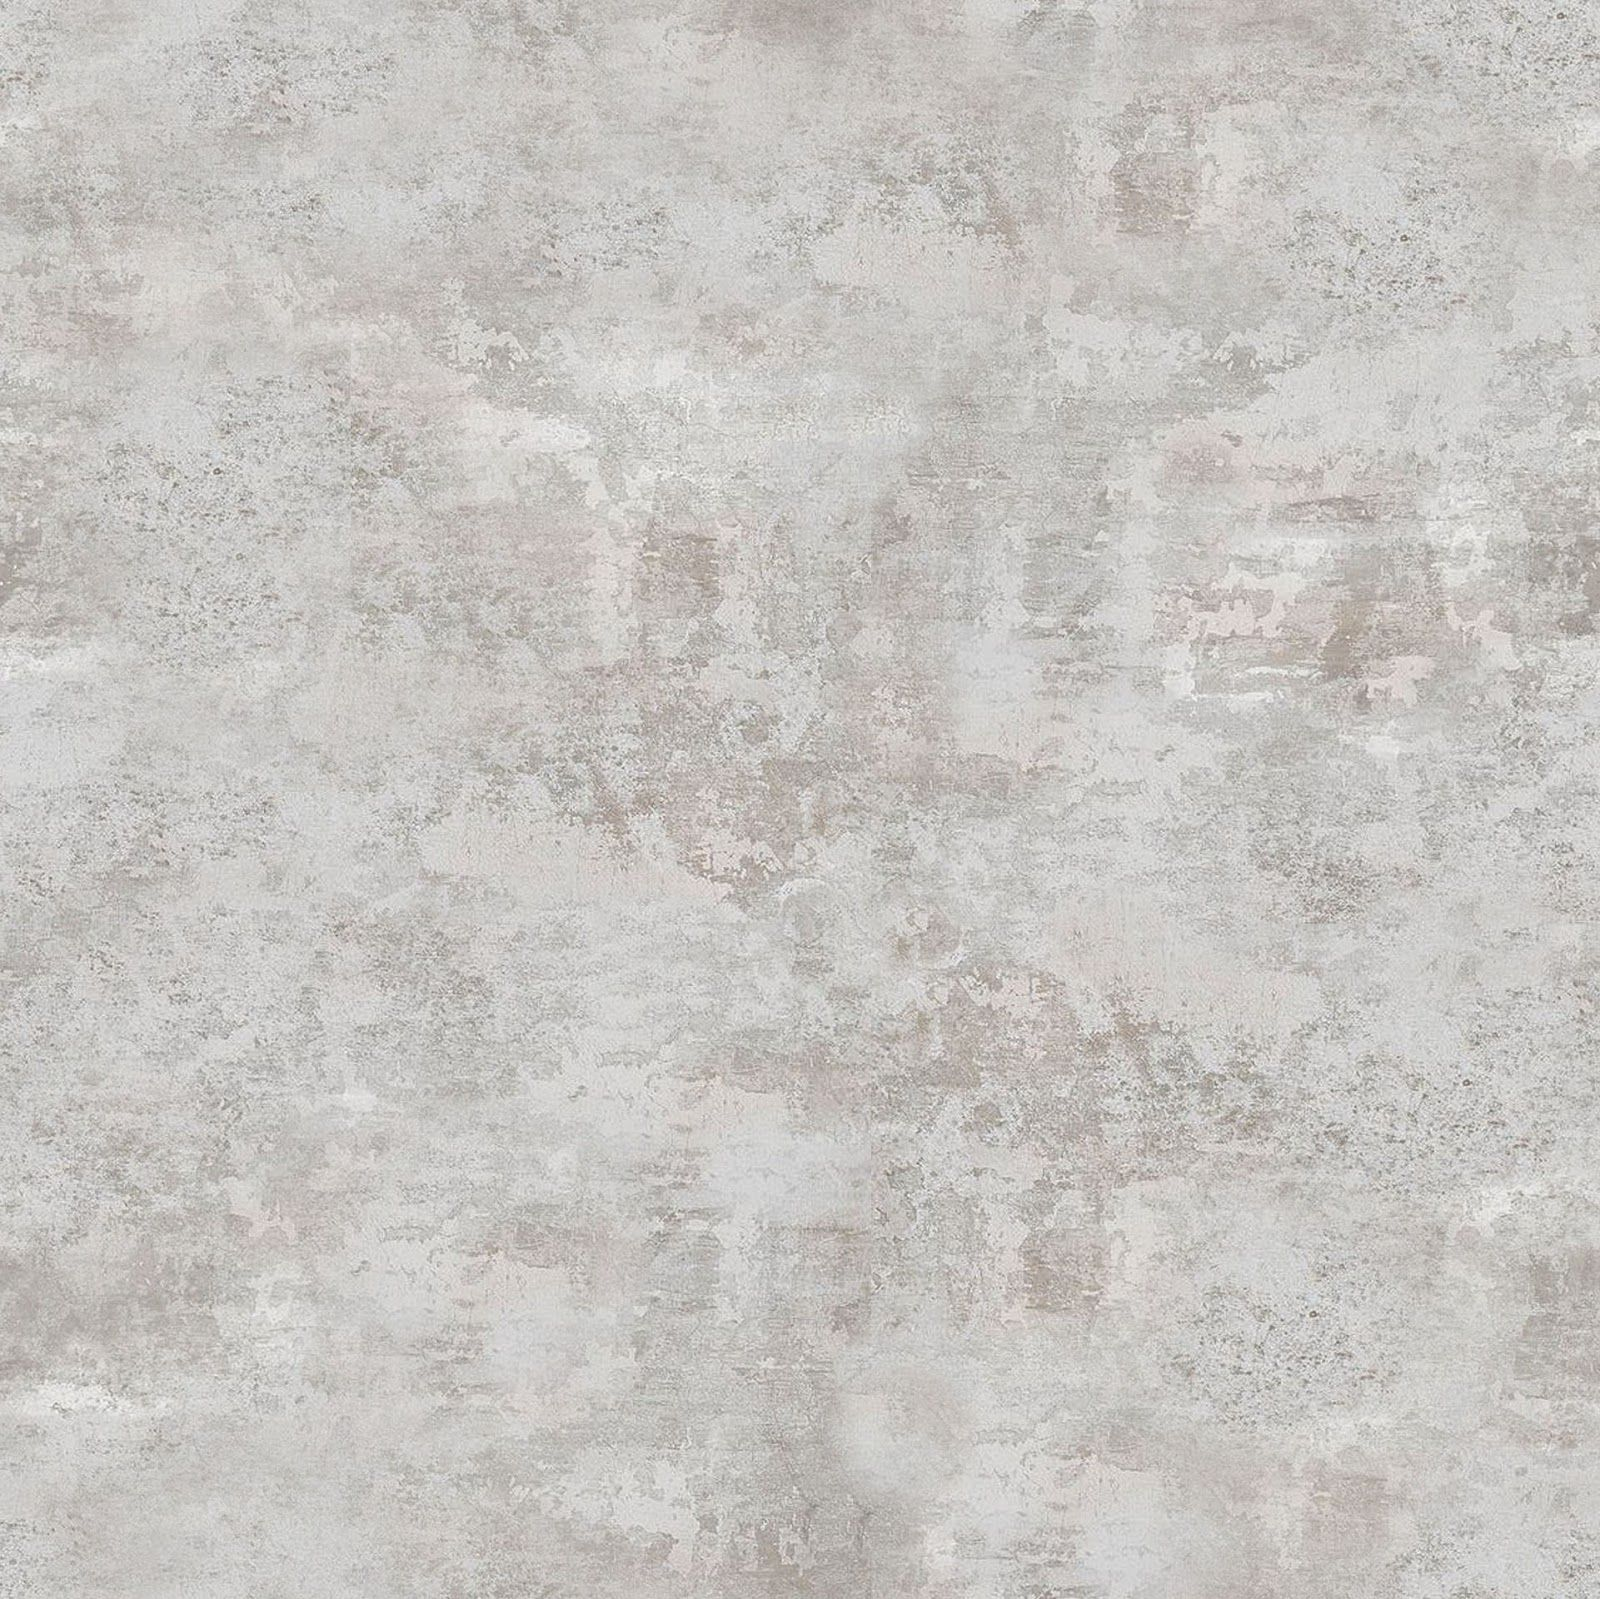 Seamless concrete wall texture texturise free seamless for Smooth concrete texture